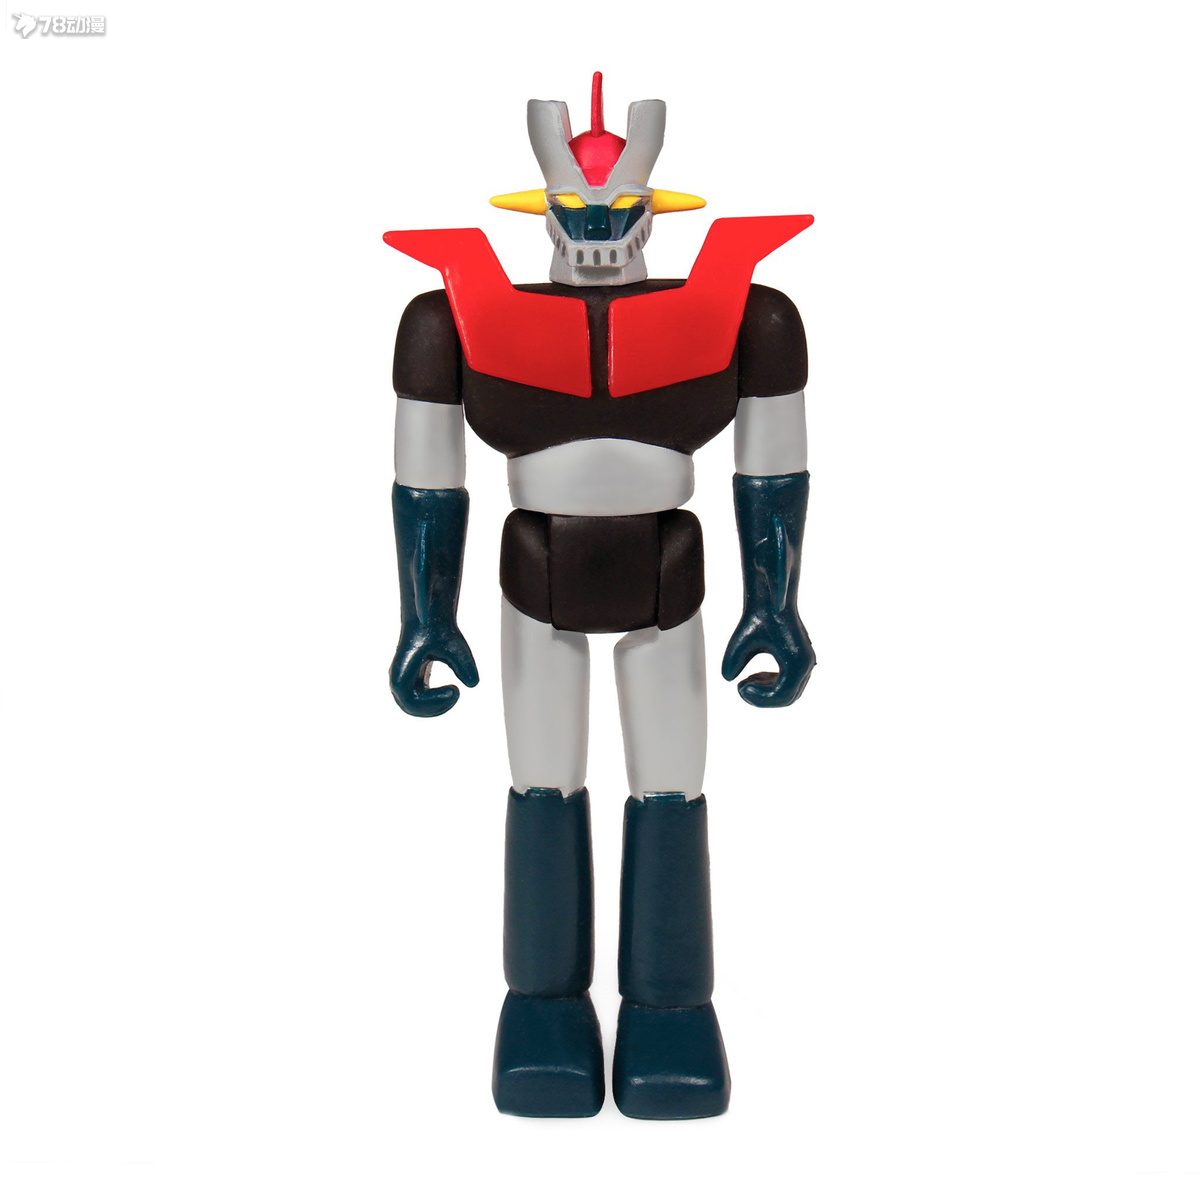 Shogun-ReAction-Figure-Mazinger-Z-Cartoon-2.jpg